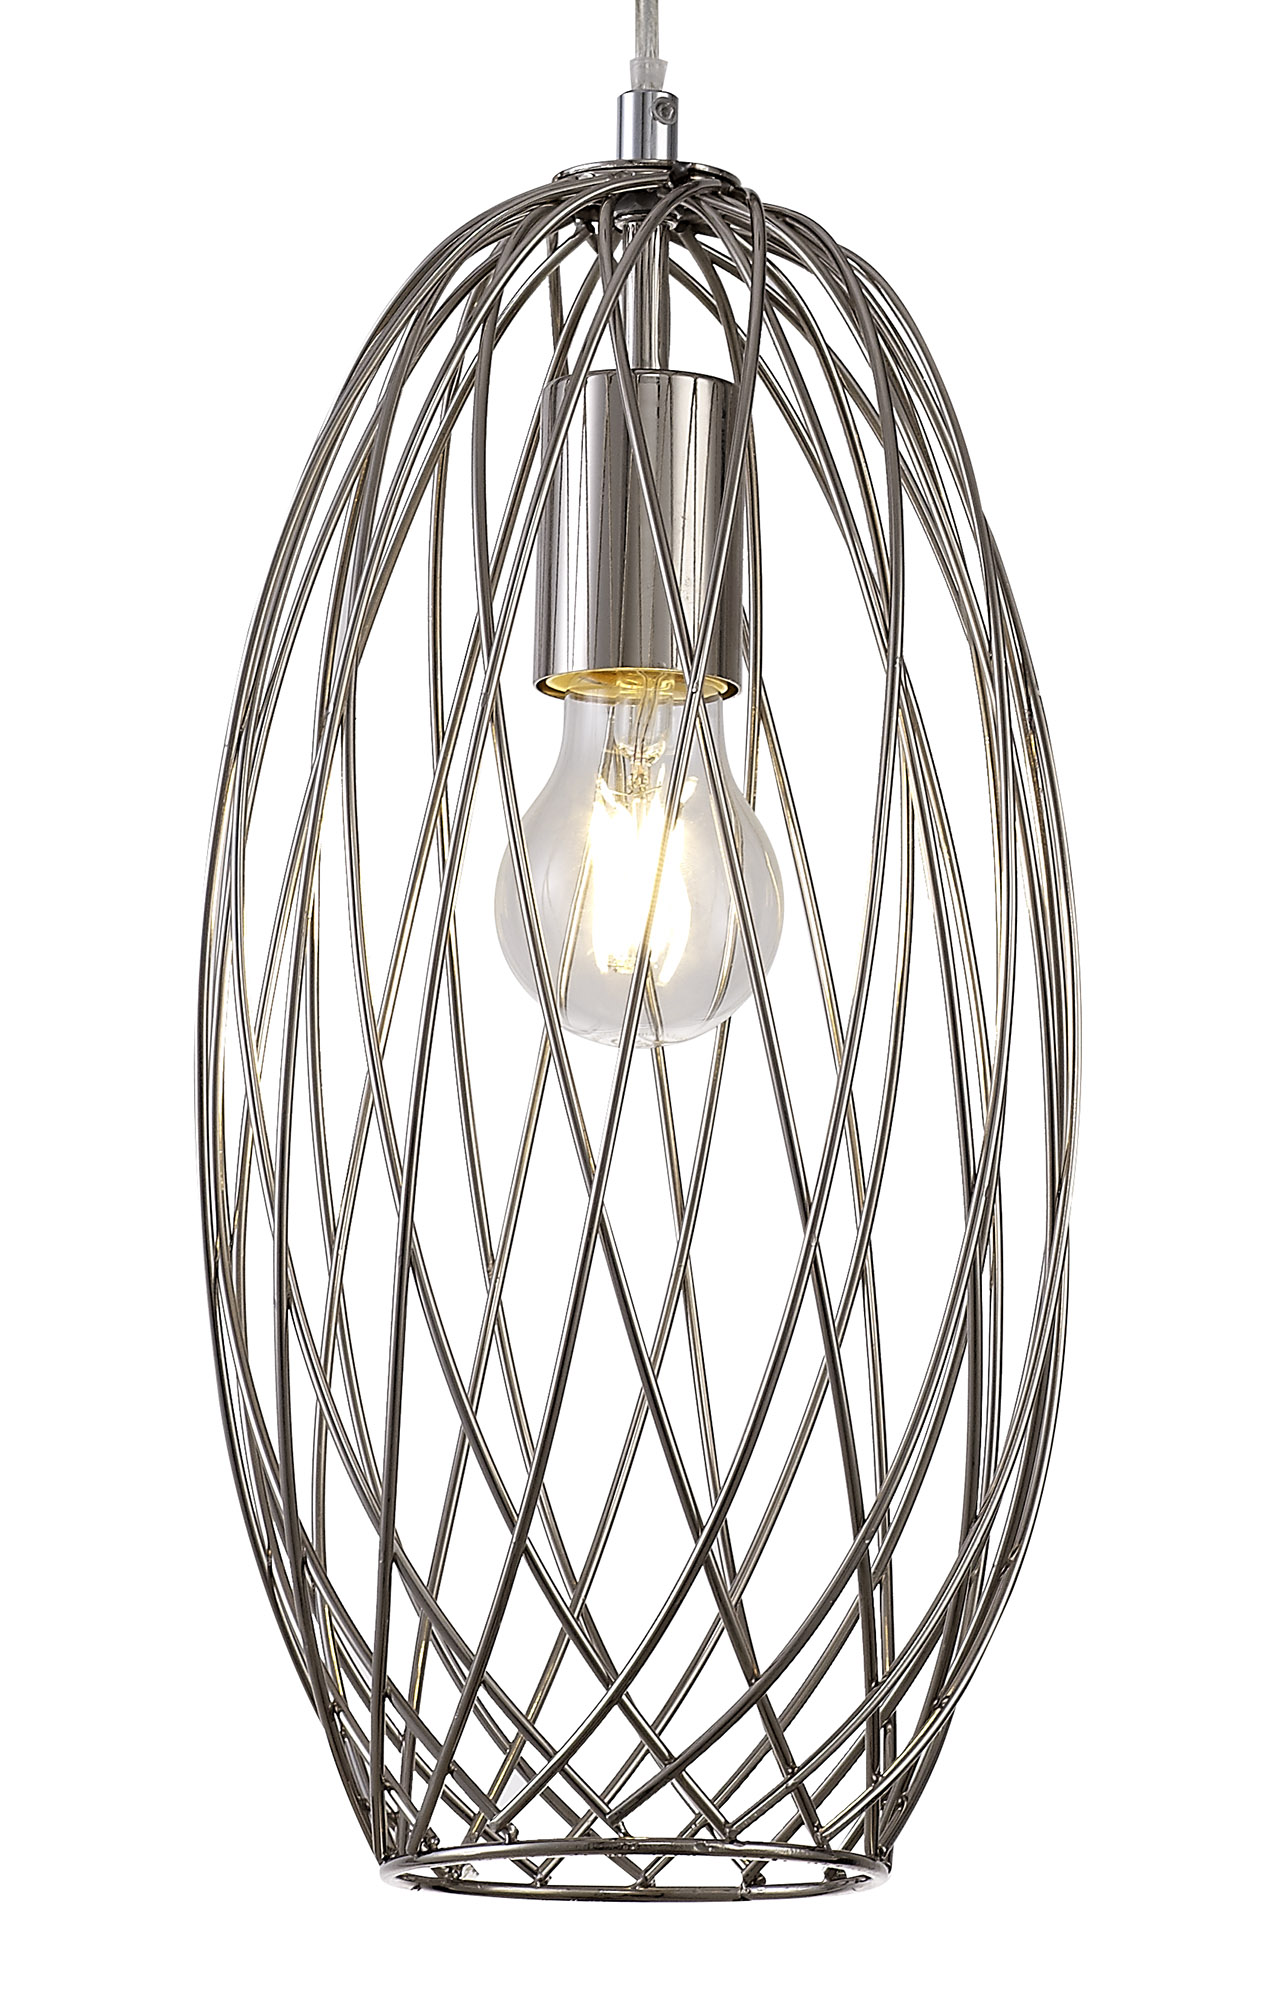 Curved Cylinder Pendant, 1 x E27, Polished Nickel